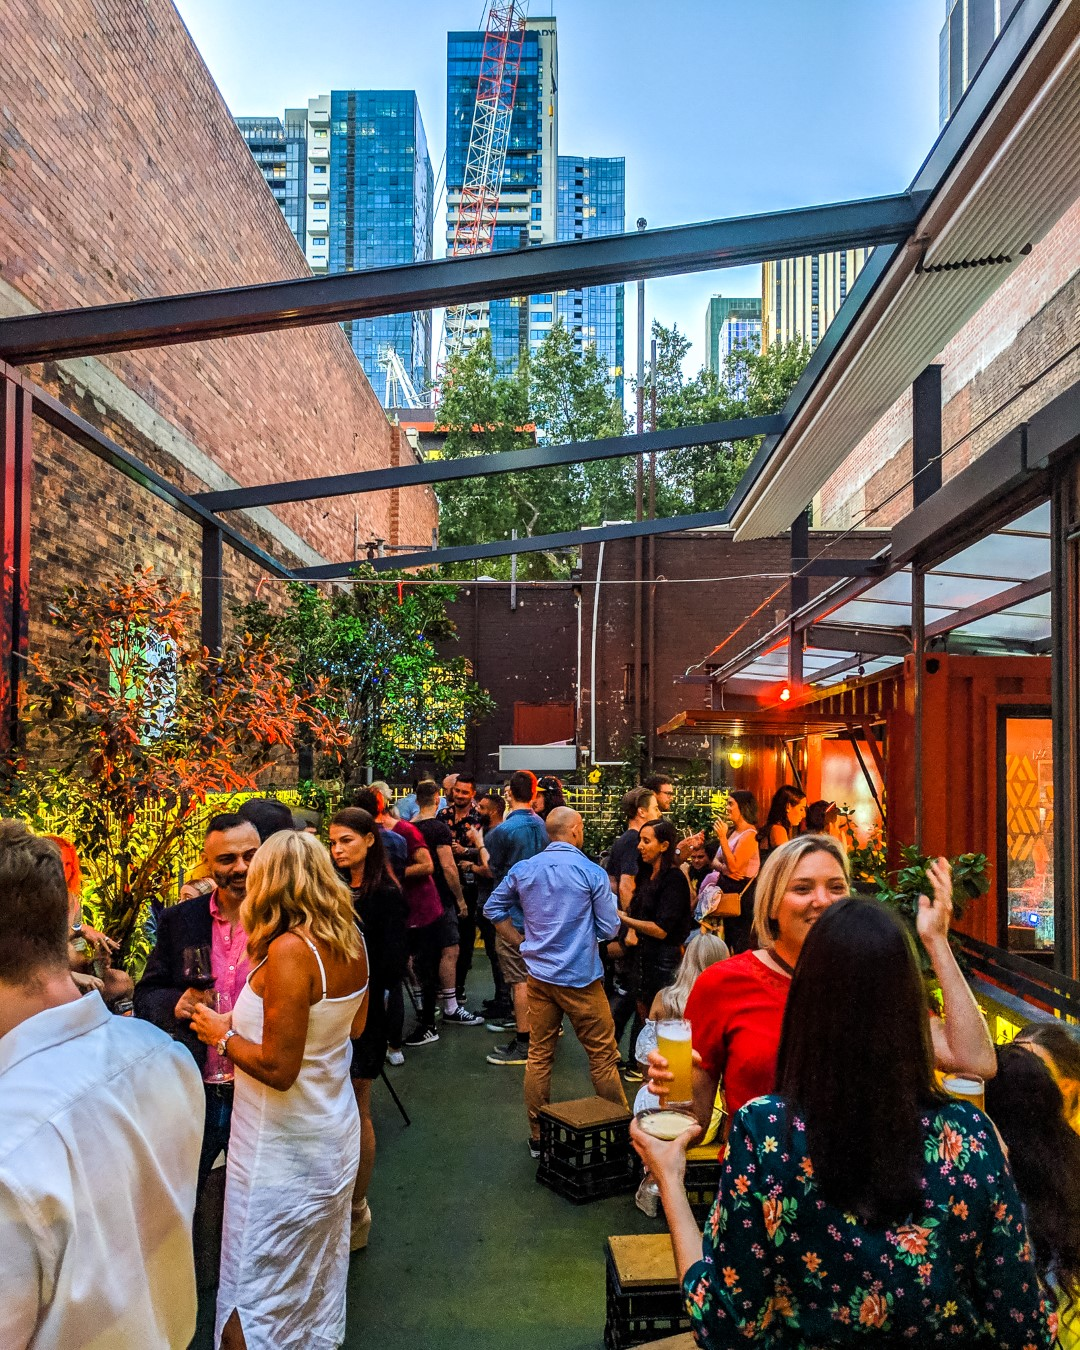 A rooftop bar with astroturf and an open roof